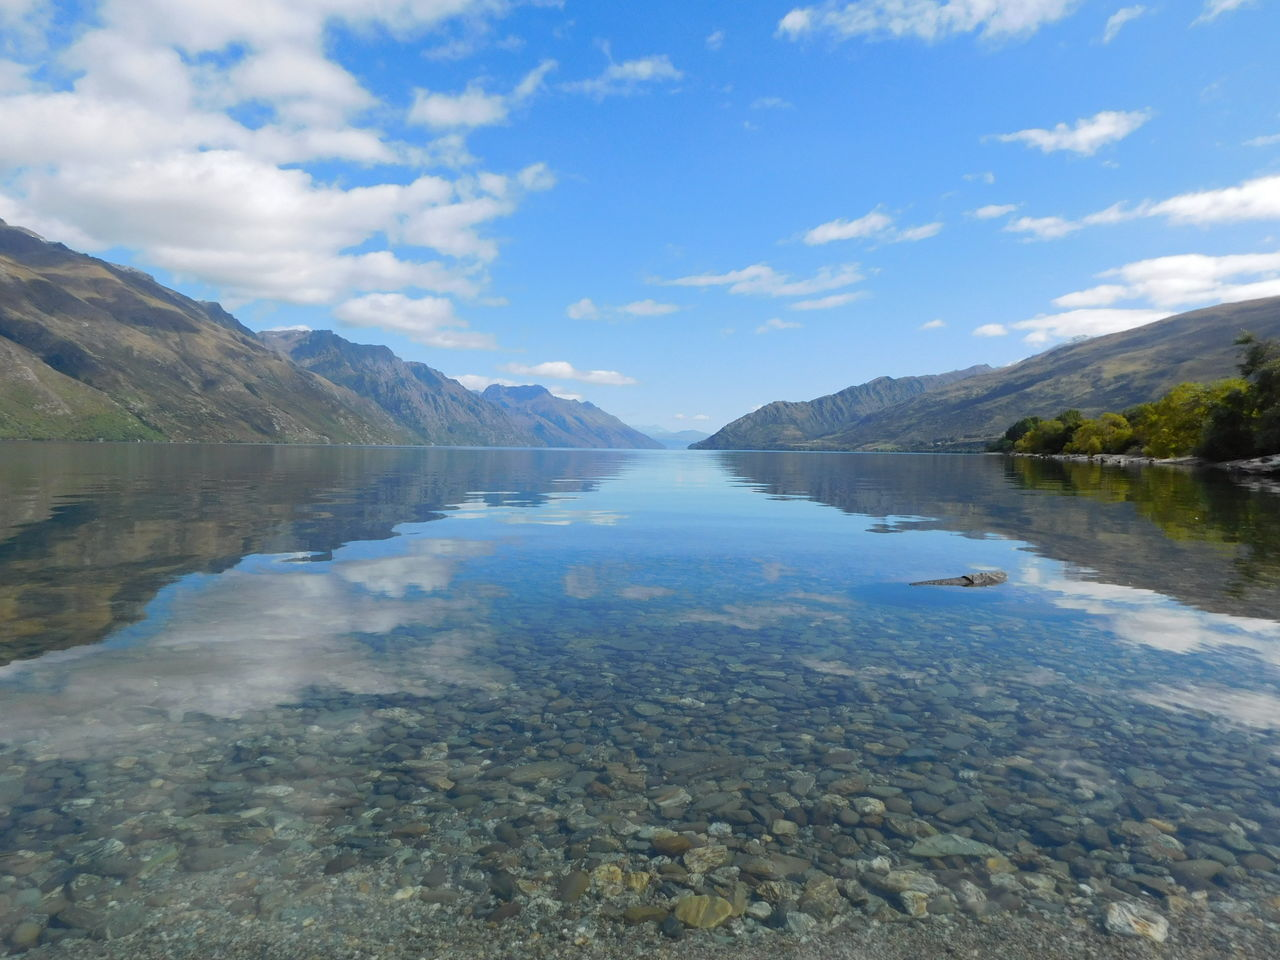 A fine day on the shores or New Zealands Lake Wakatipu Beauty In Nature Blue Cloud - Sky Crystal Clear Waters Day Freshness Horizon Over Water Lake Lakeshore Landscape Mountain Mountain Range Nature Newzealand No People Outdoors Reflection Scenics Sky Tranquility Water